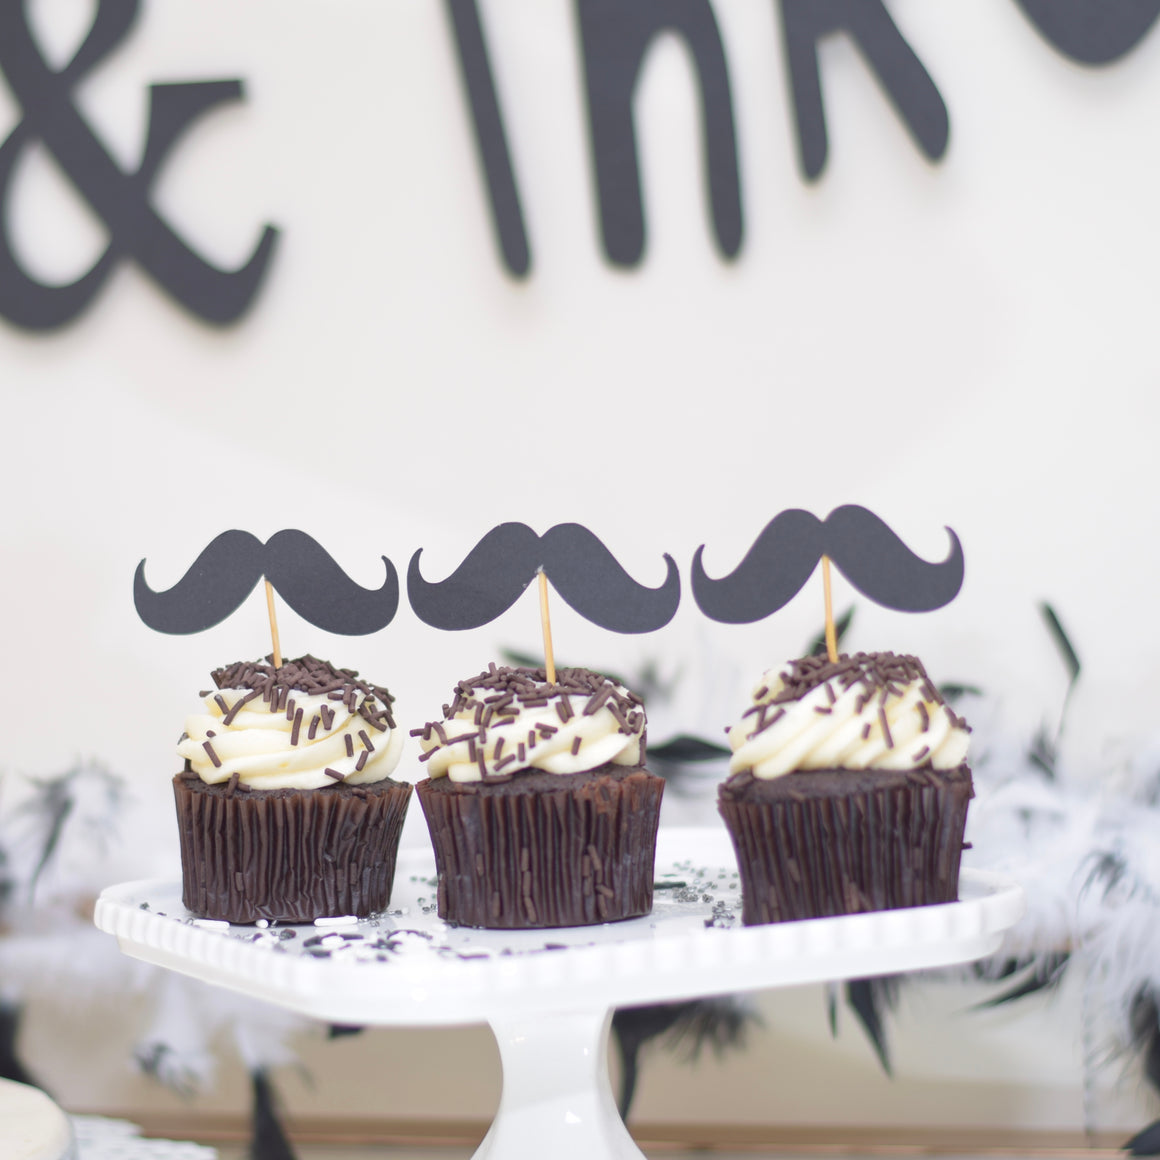 Set of three Black moustache cupcake toppers with three black and white cupcakes